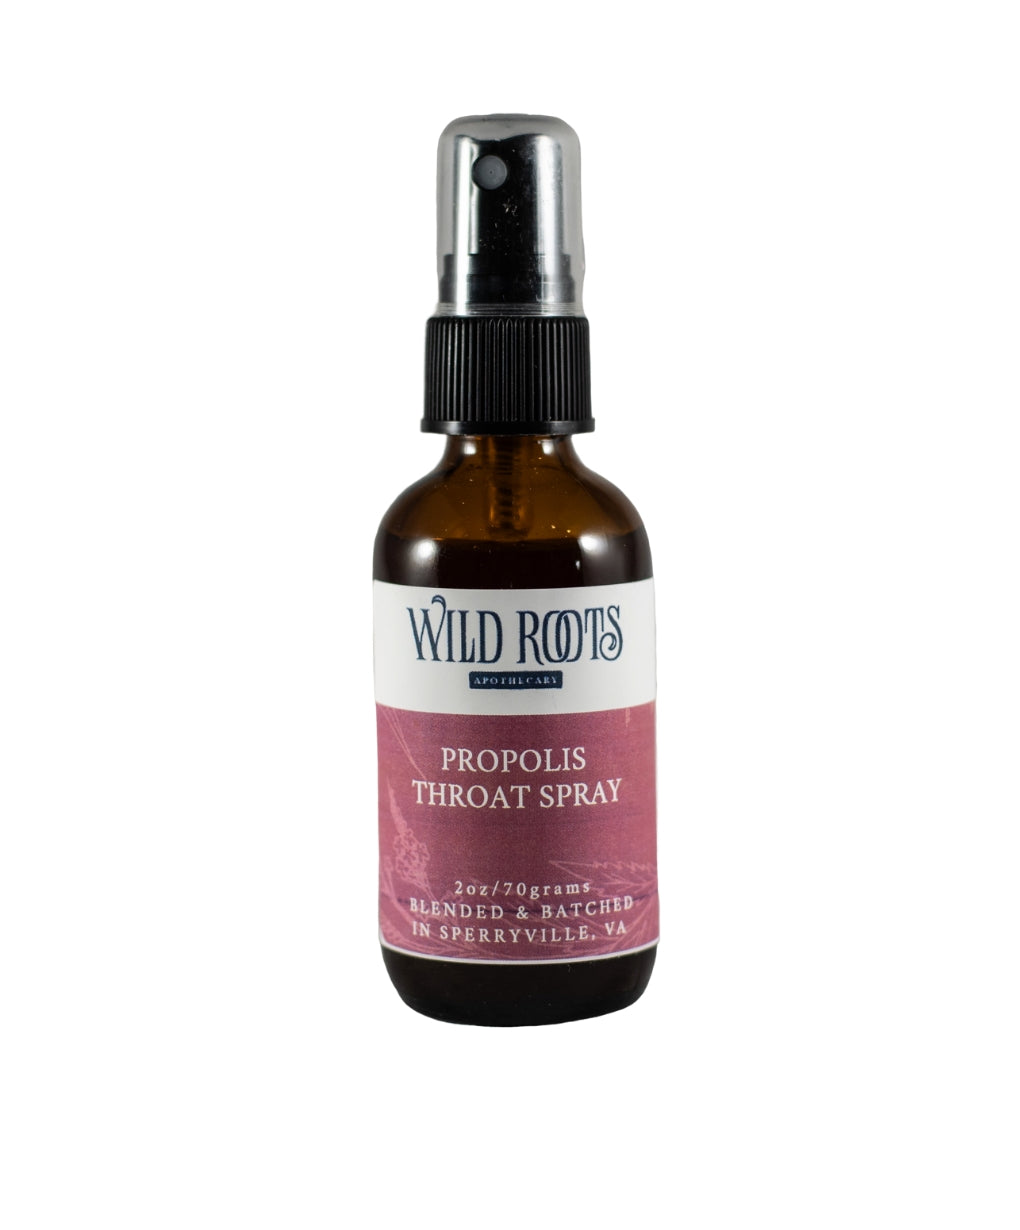 Propolis Throat Spray